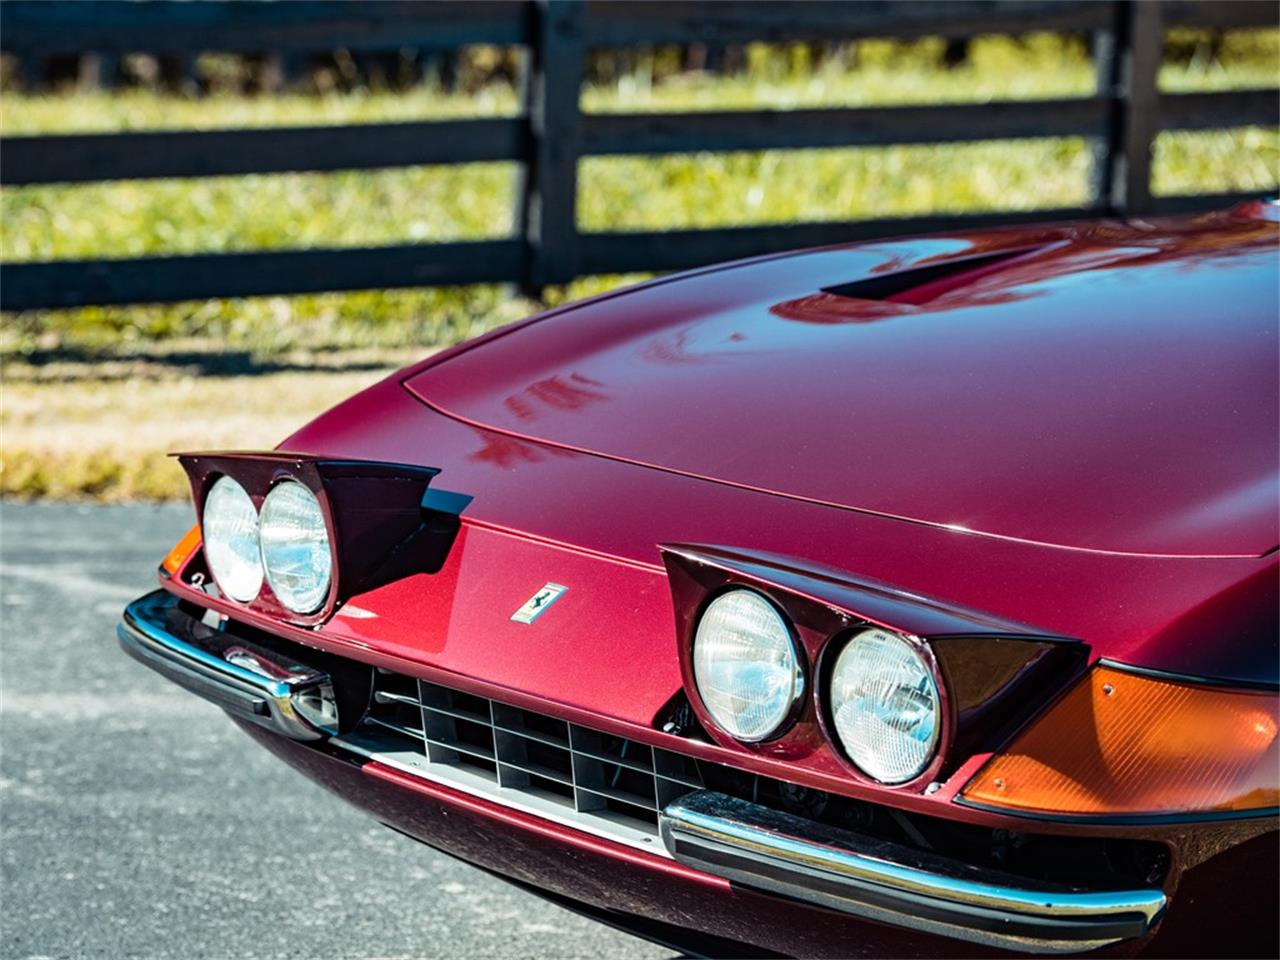 Large Picture of 1972 365 GTB/4 Daytona Berlinetta located in California - OW0C